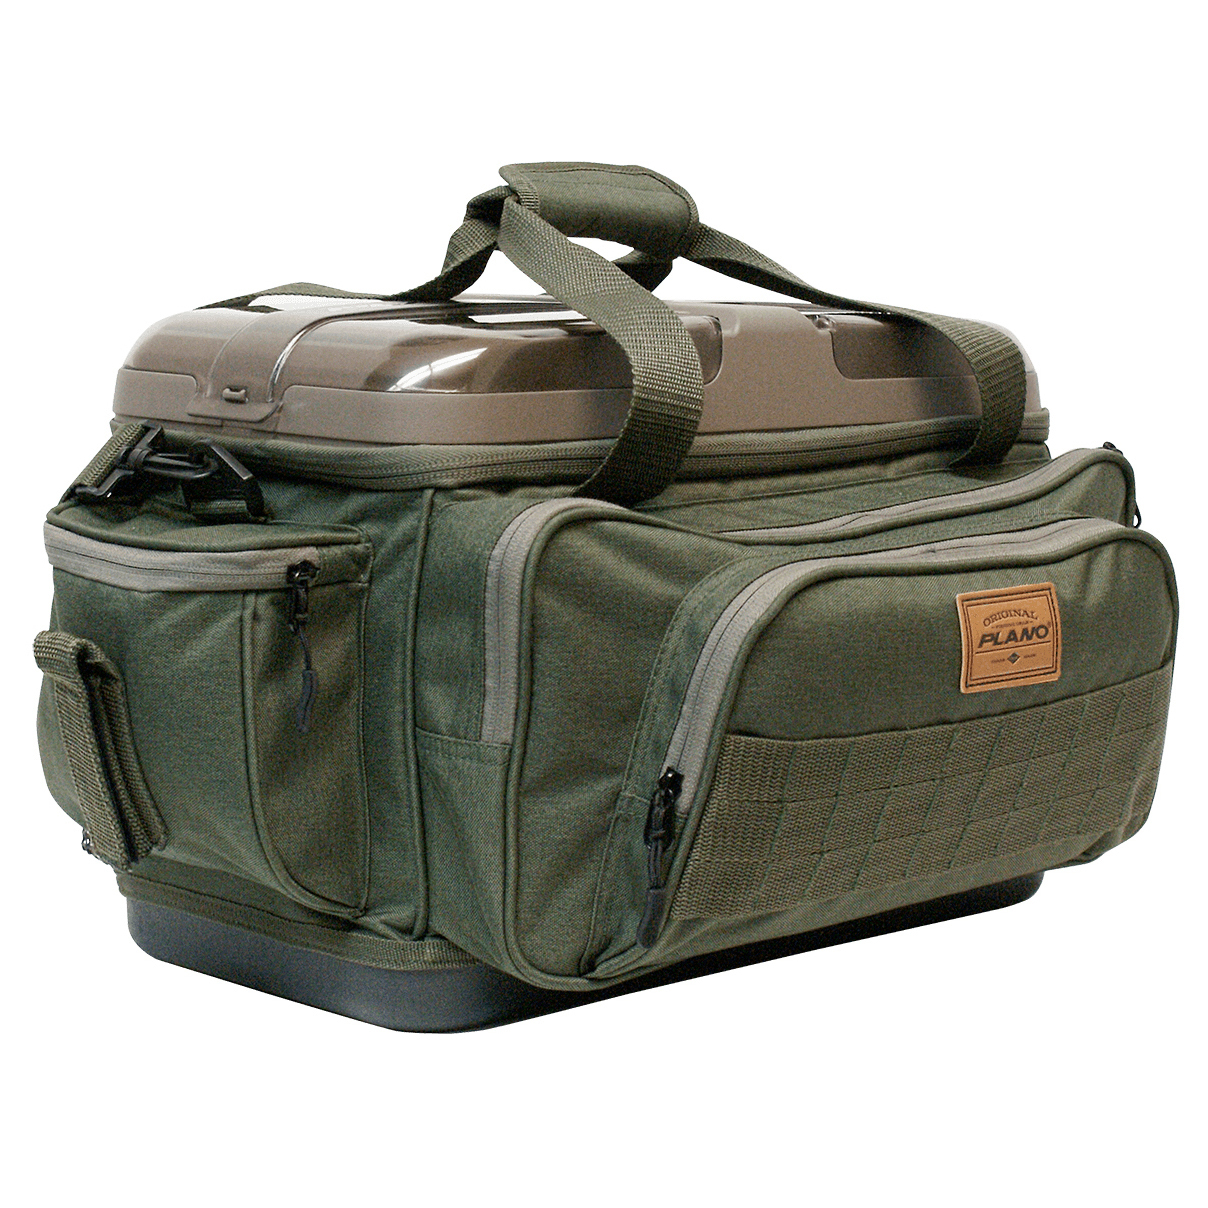 Plano A-Series 3700 Quick-Top Tackle Bag thumbnail